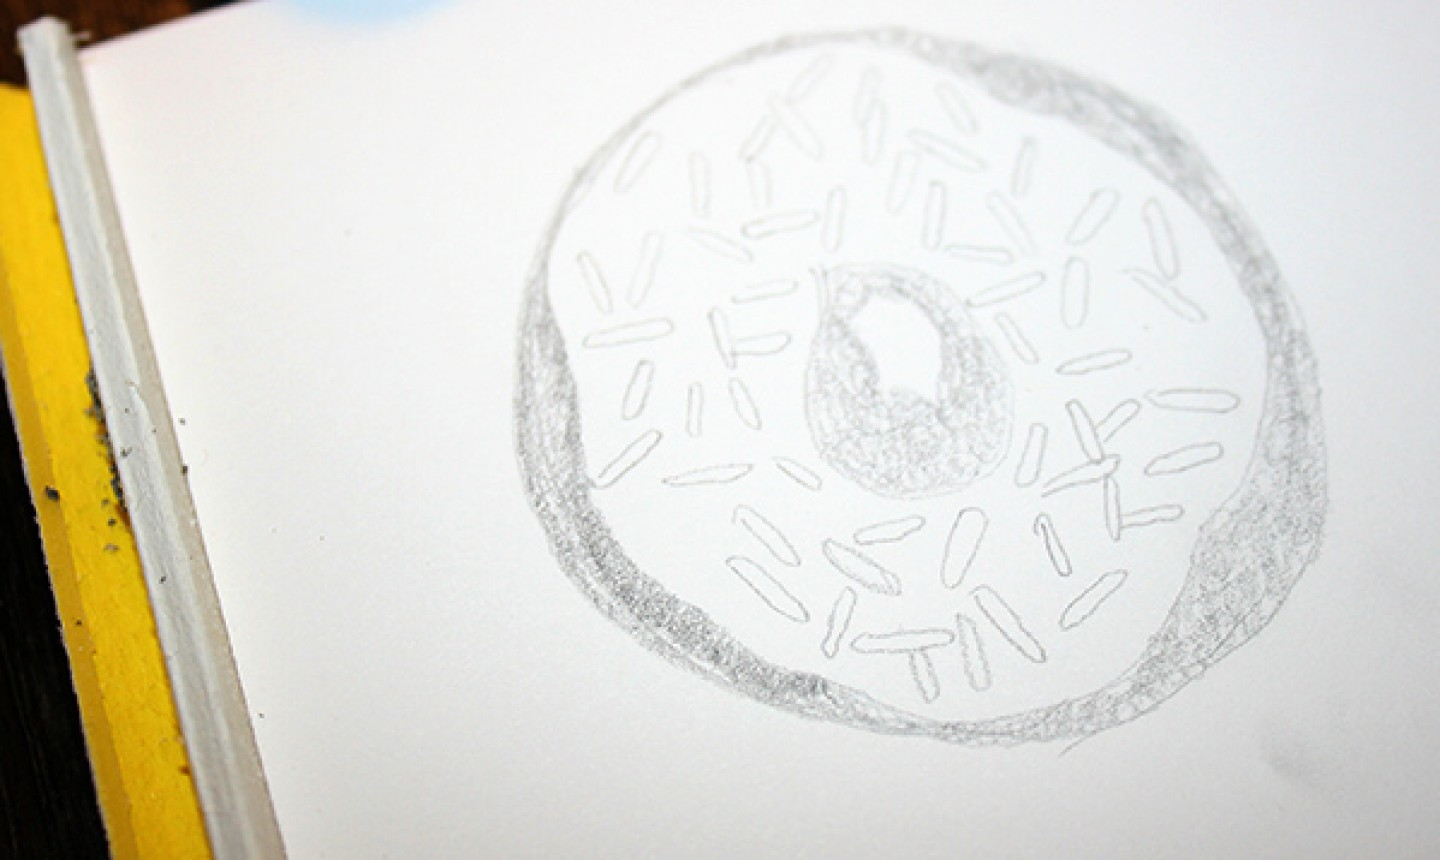 Sketch of a donut